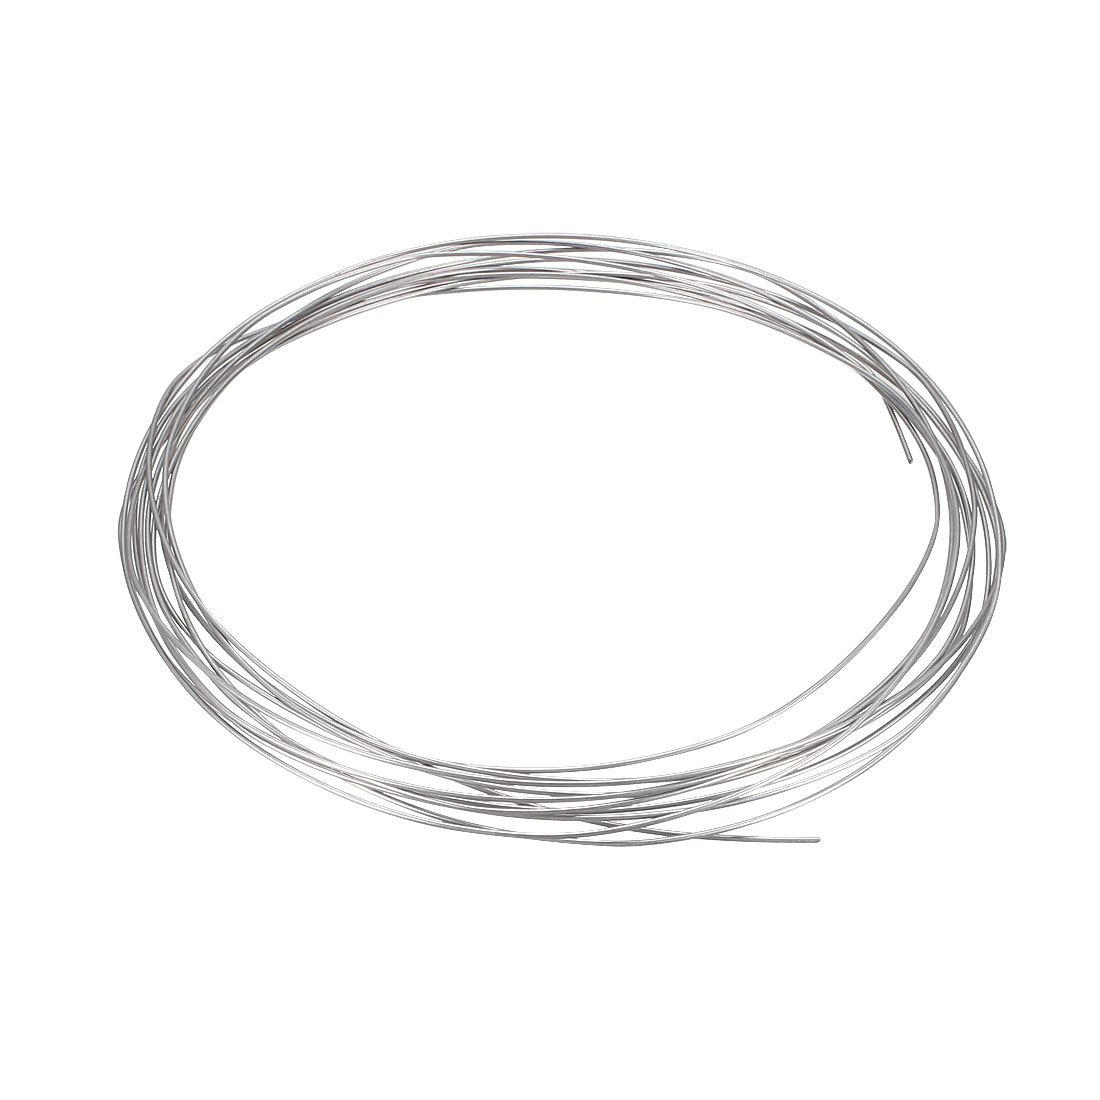 1.6mm Diameter AWG14 Gauge Nichrome Resistance Heating Coils Resistor Wire Cable 7.5meter 25ft